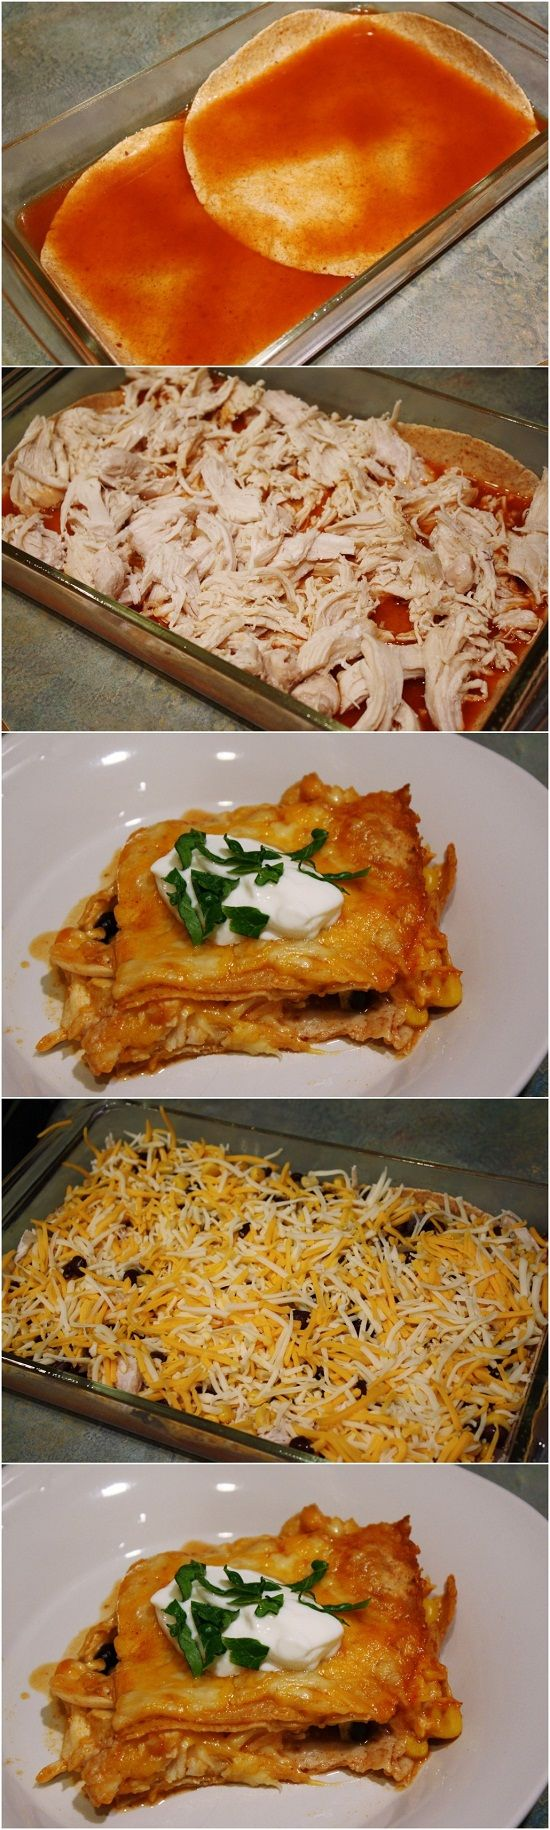 Skinny Chicken Enchilada Casserole - RP by greatrecipestoshare.com